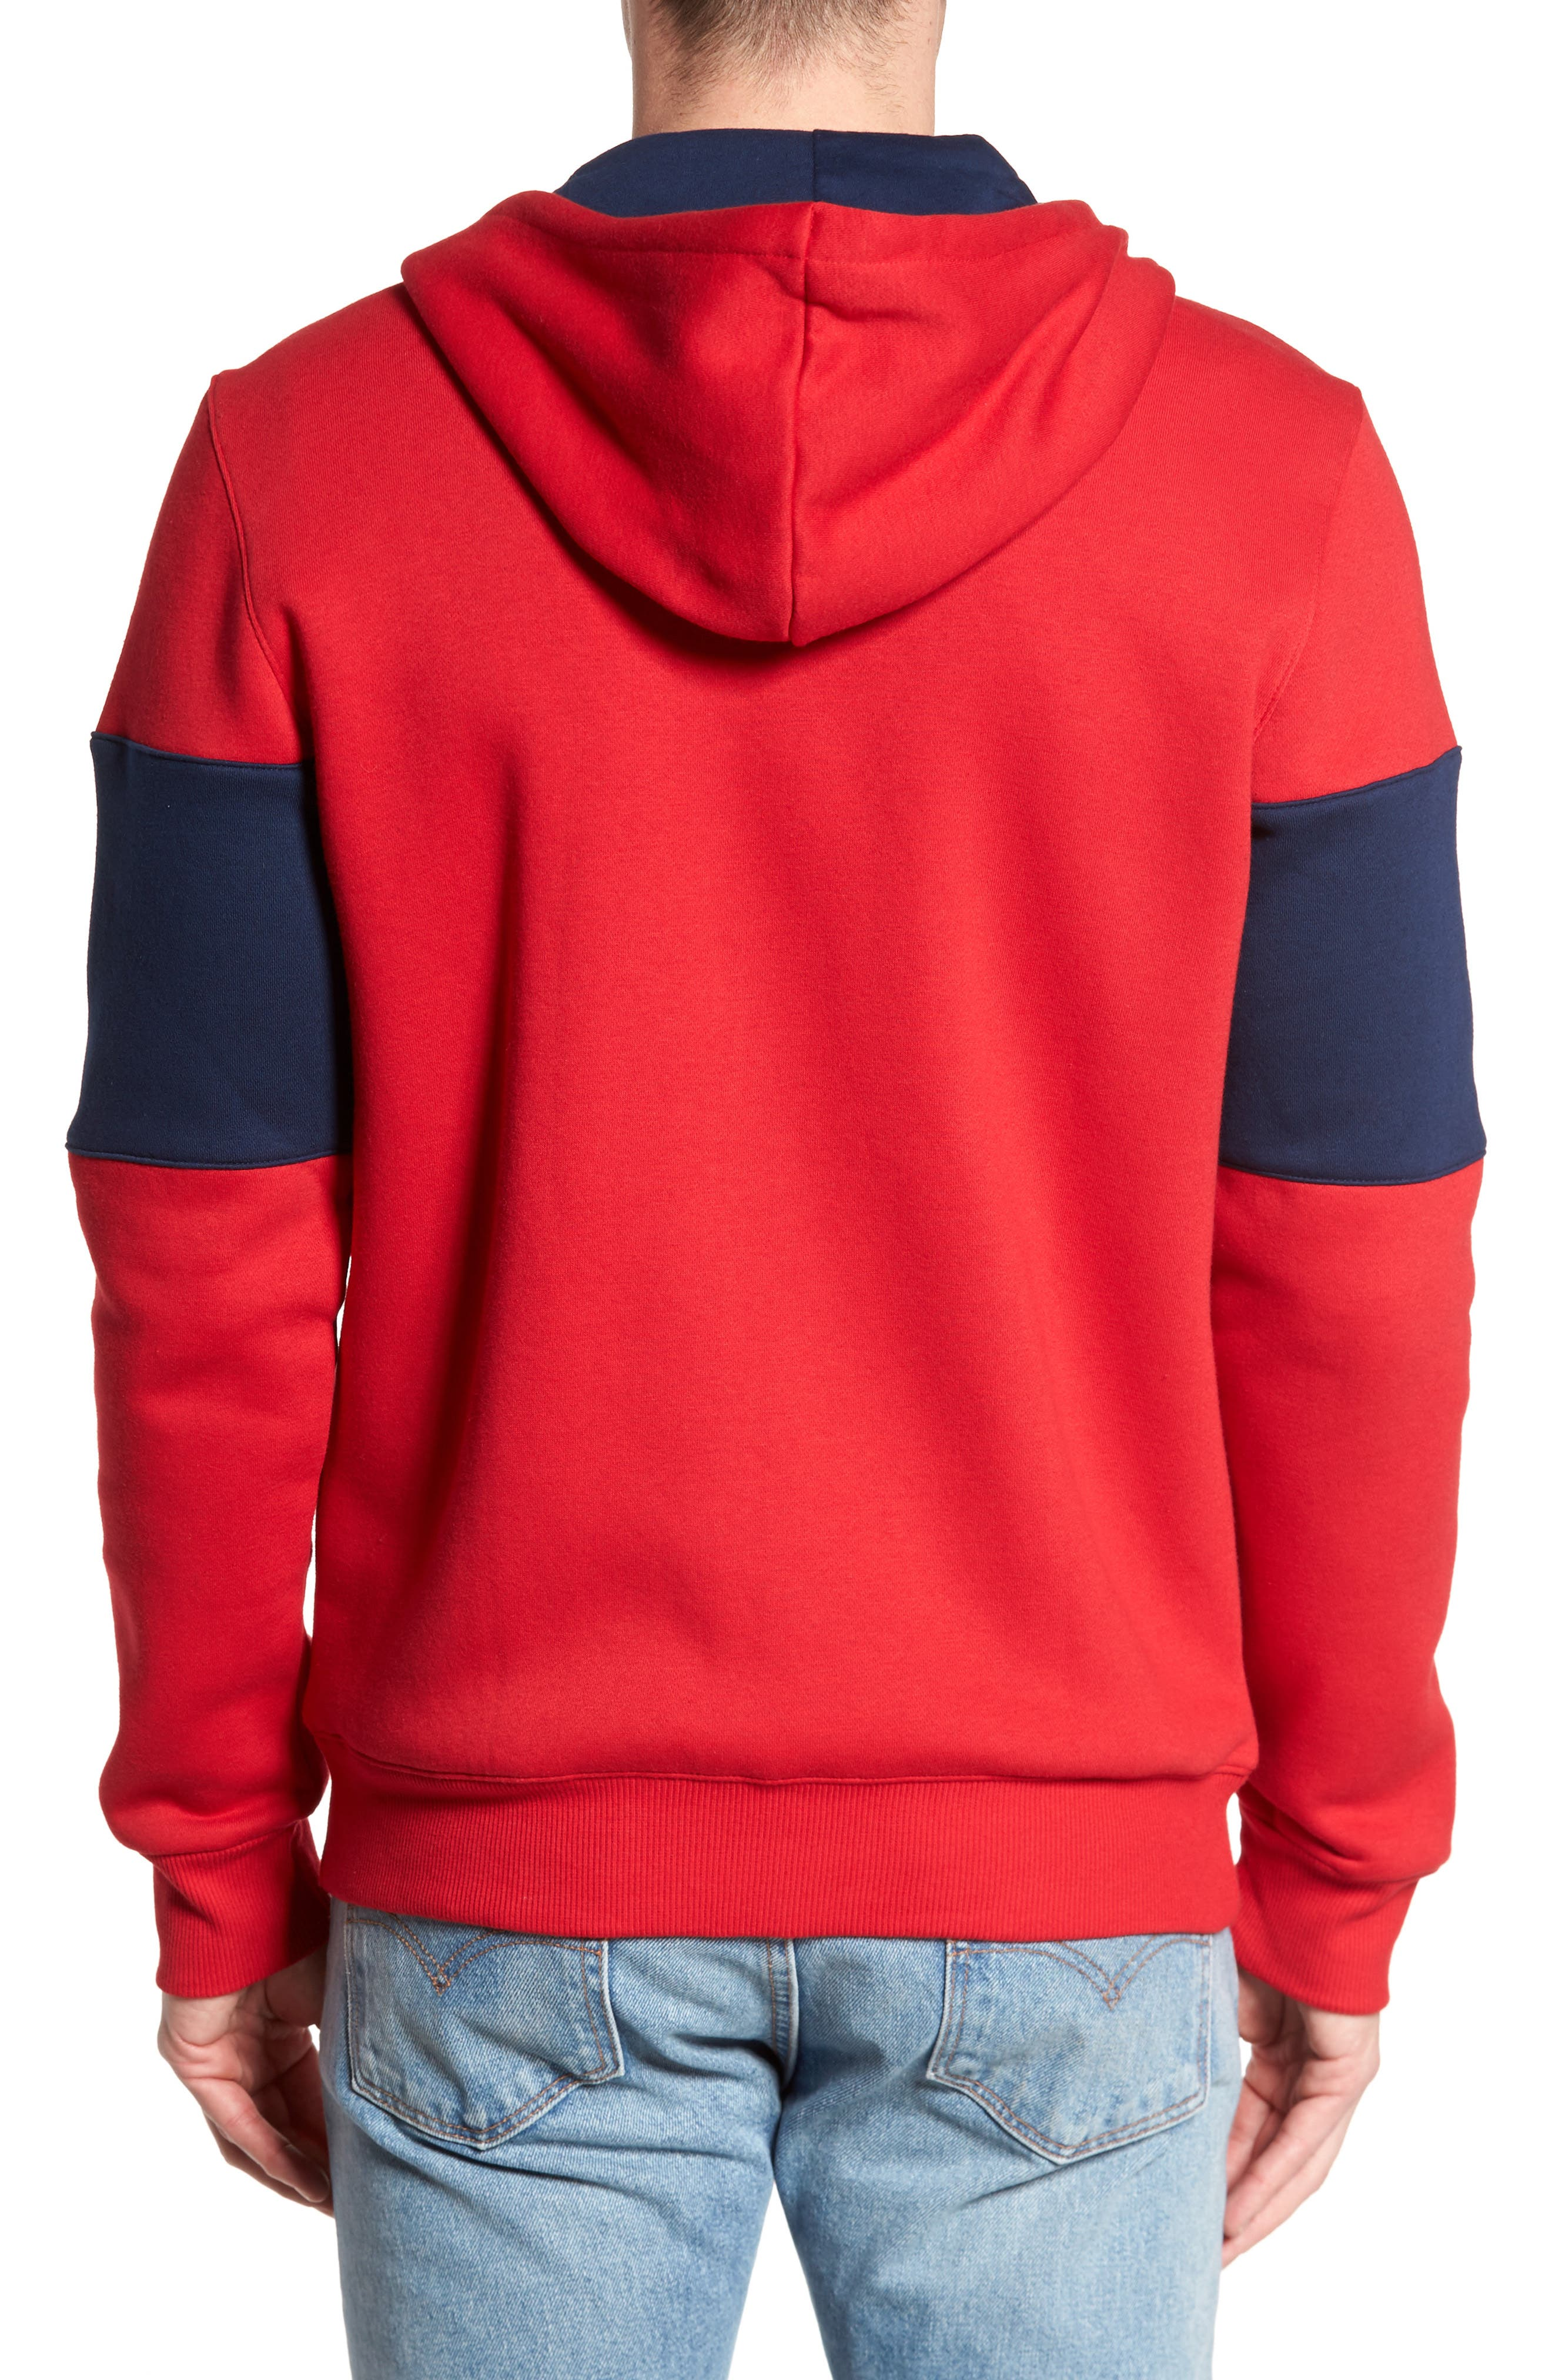 Classics Foundation Clockblock Zip Hoodie,                             Alternate thumbnail 2, color,                             Excellent Red/ Collegiate Navy